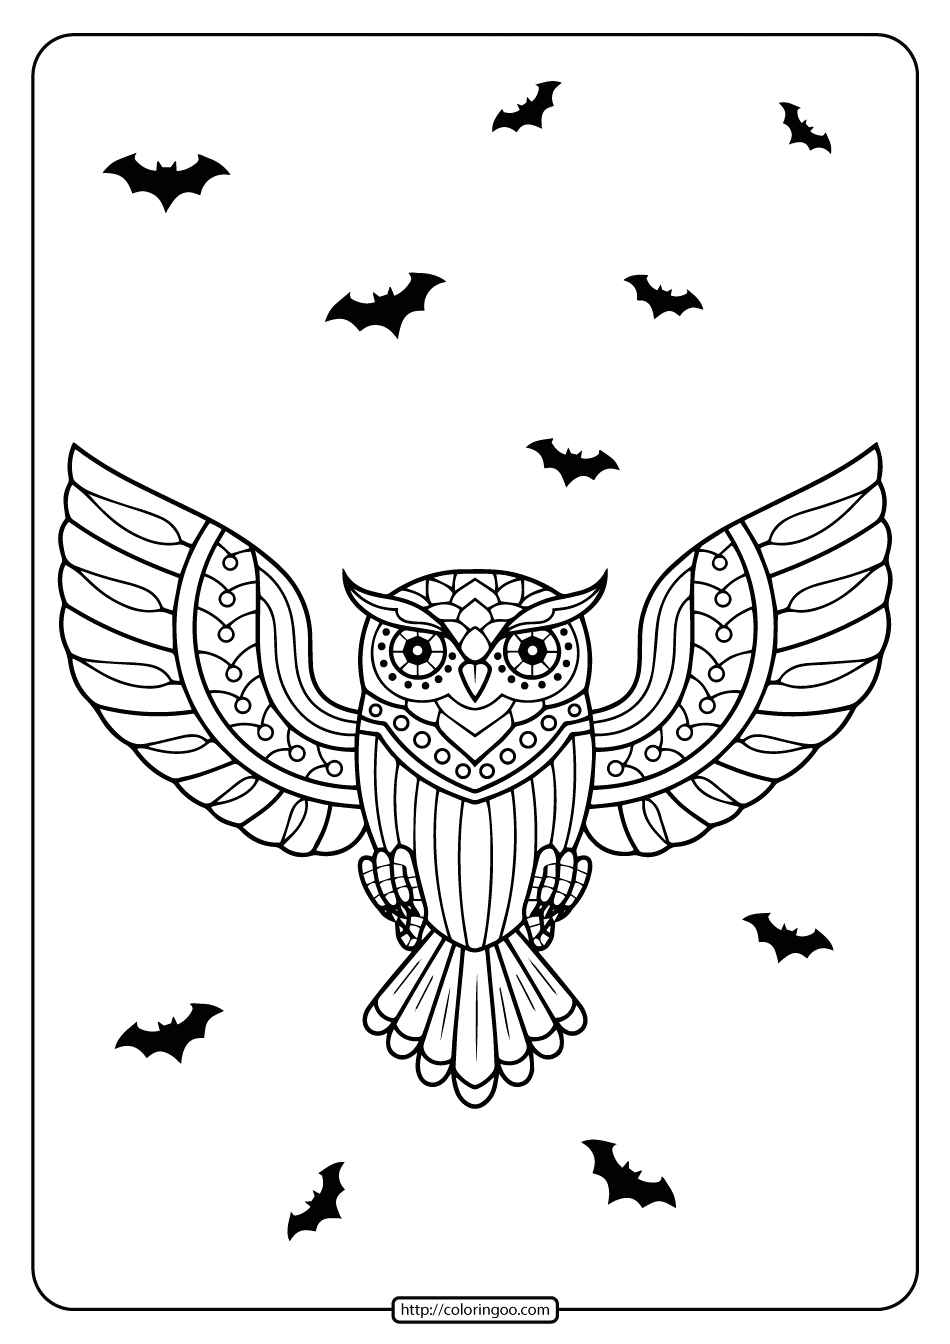 Day Of the Dead Owl Coloring Pages Printable Day Of the Dead Owl Coloring Page